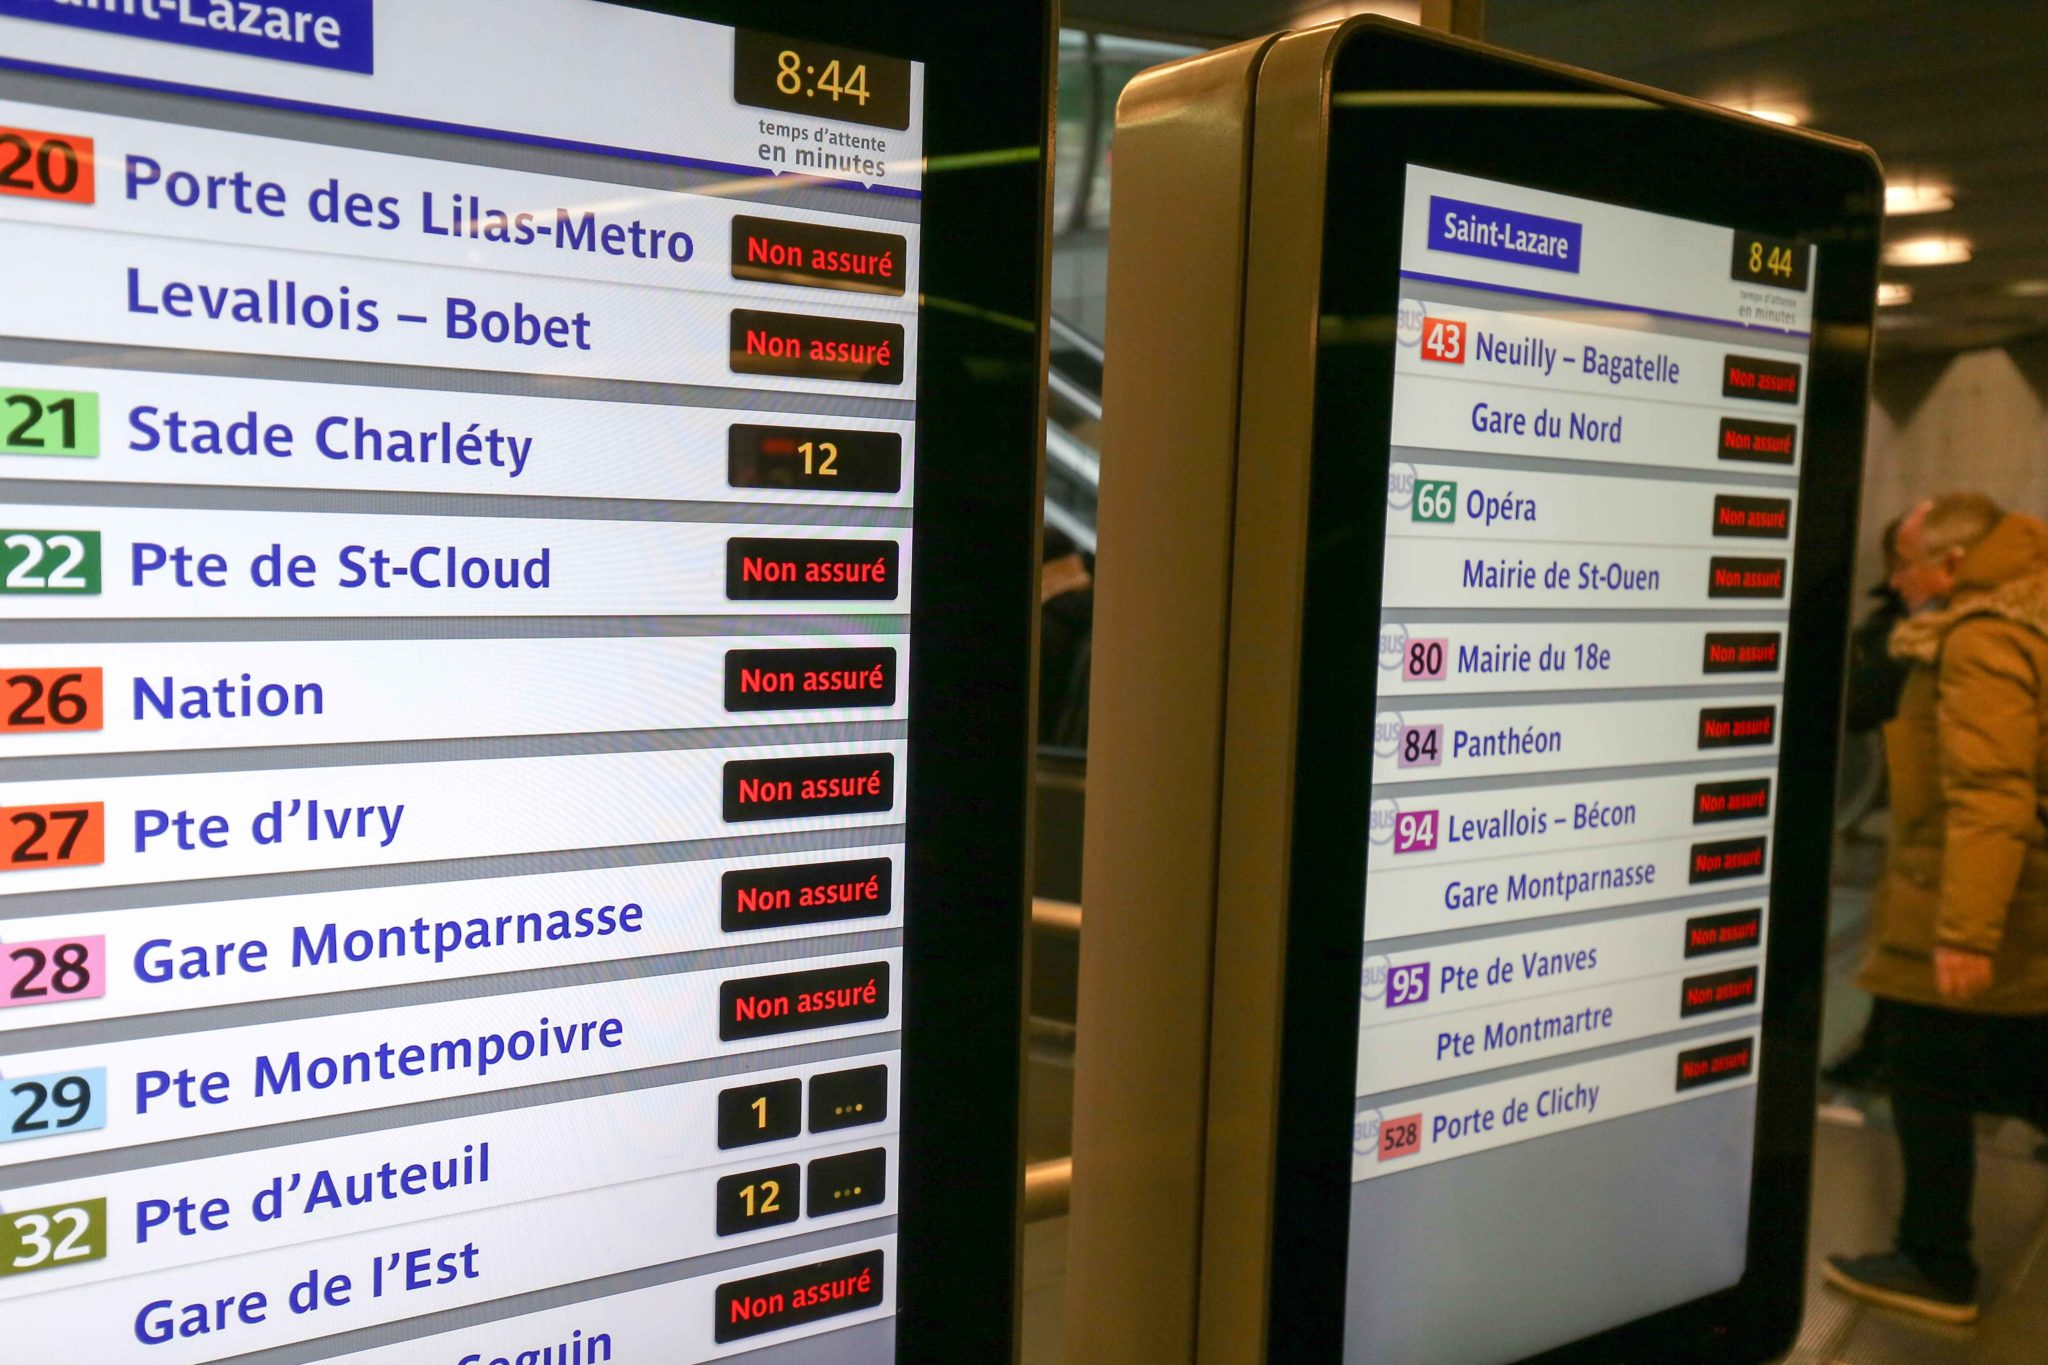 Most trains do not operate as shown on the display panel in Paris Gare Saint-Lazare during a strike of Paris public transports operator RATP and public railways company SNCF employees against French government's plan to overhaul the country's retirement sy